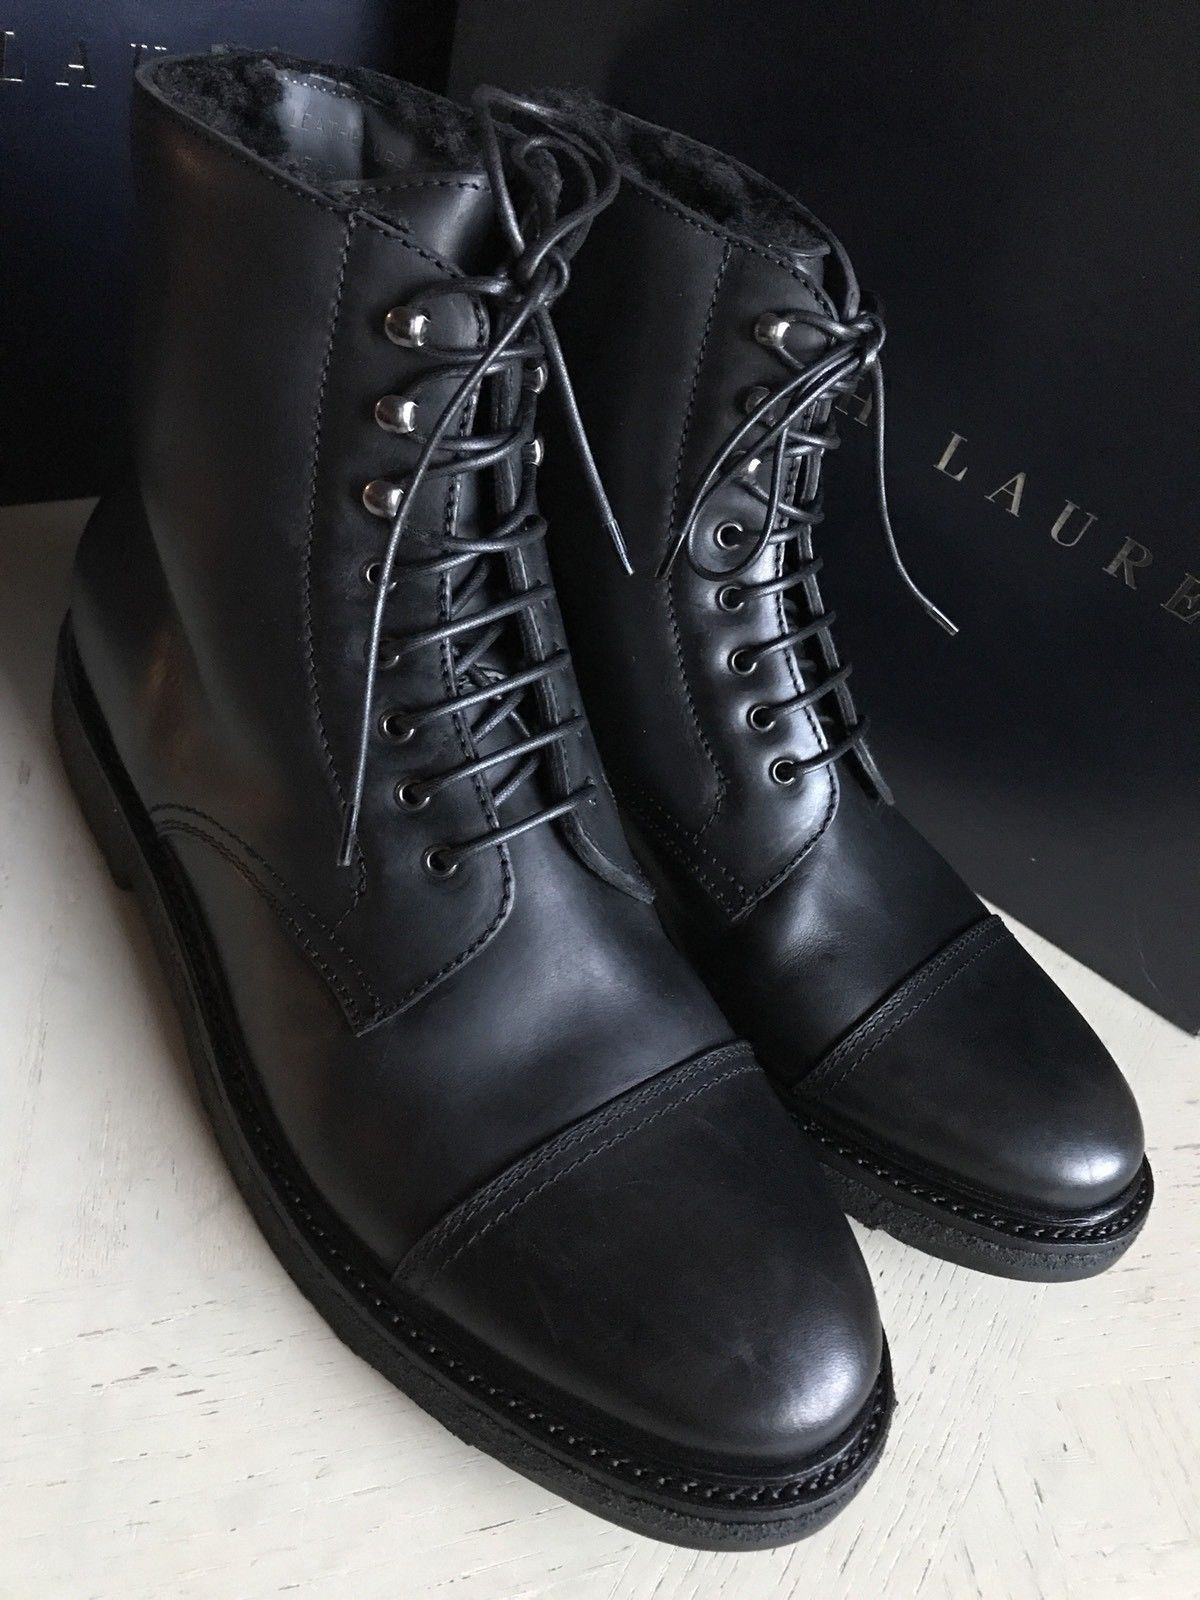 New $1100 Ralph Lauren Purple Label Men Shearling Lined Boots Shoes Black 9.5 US - BAYSUPERSTORE